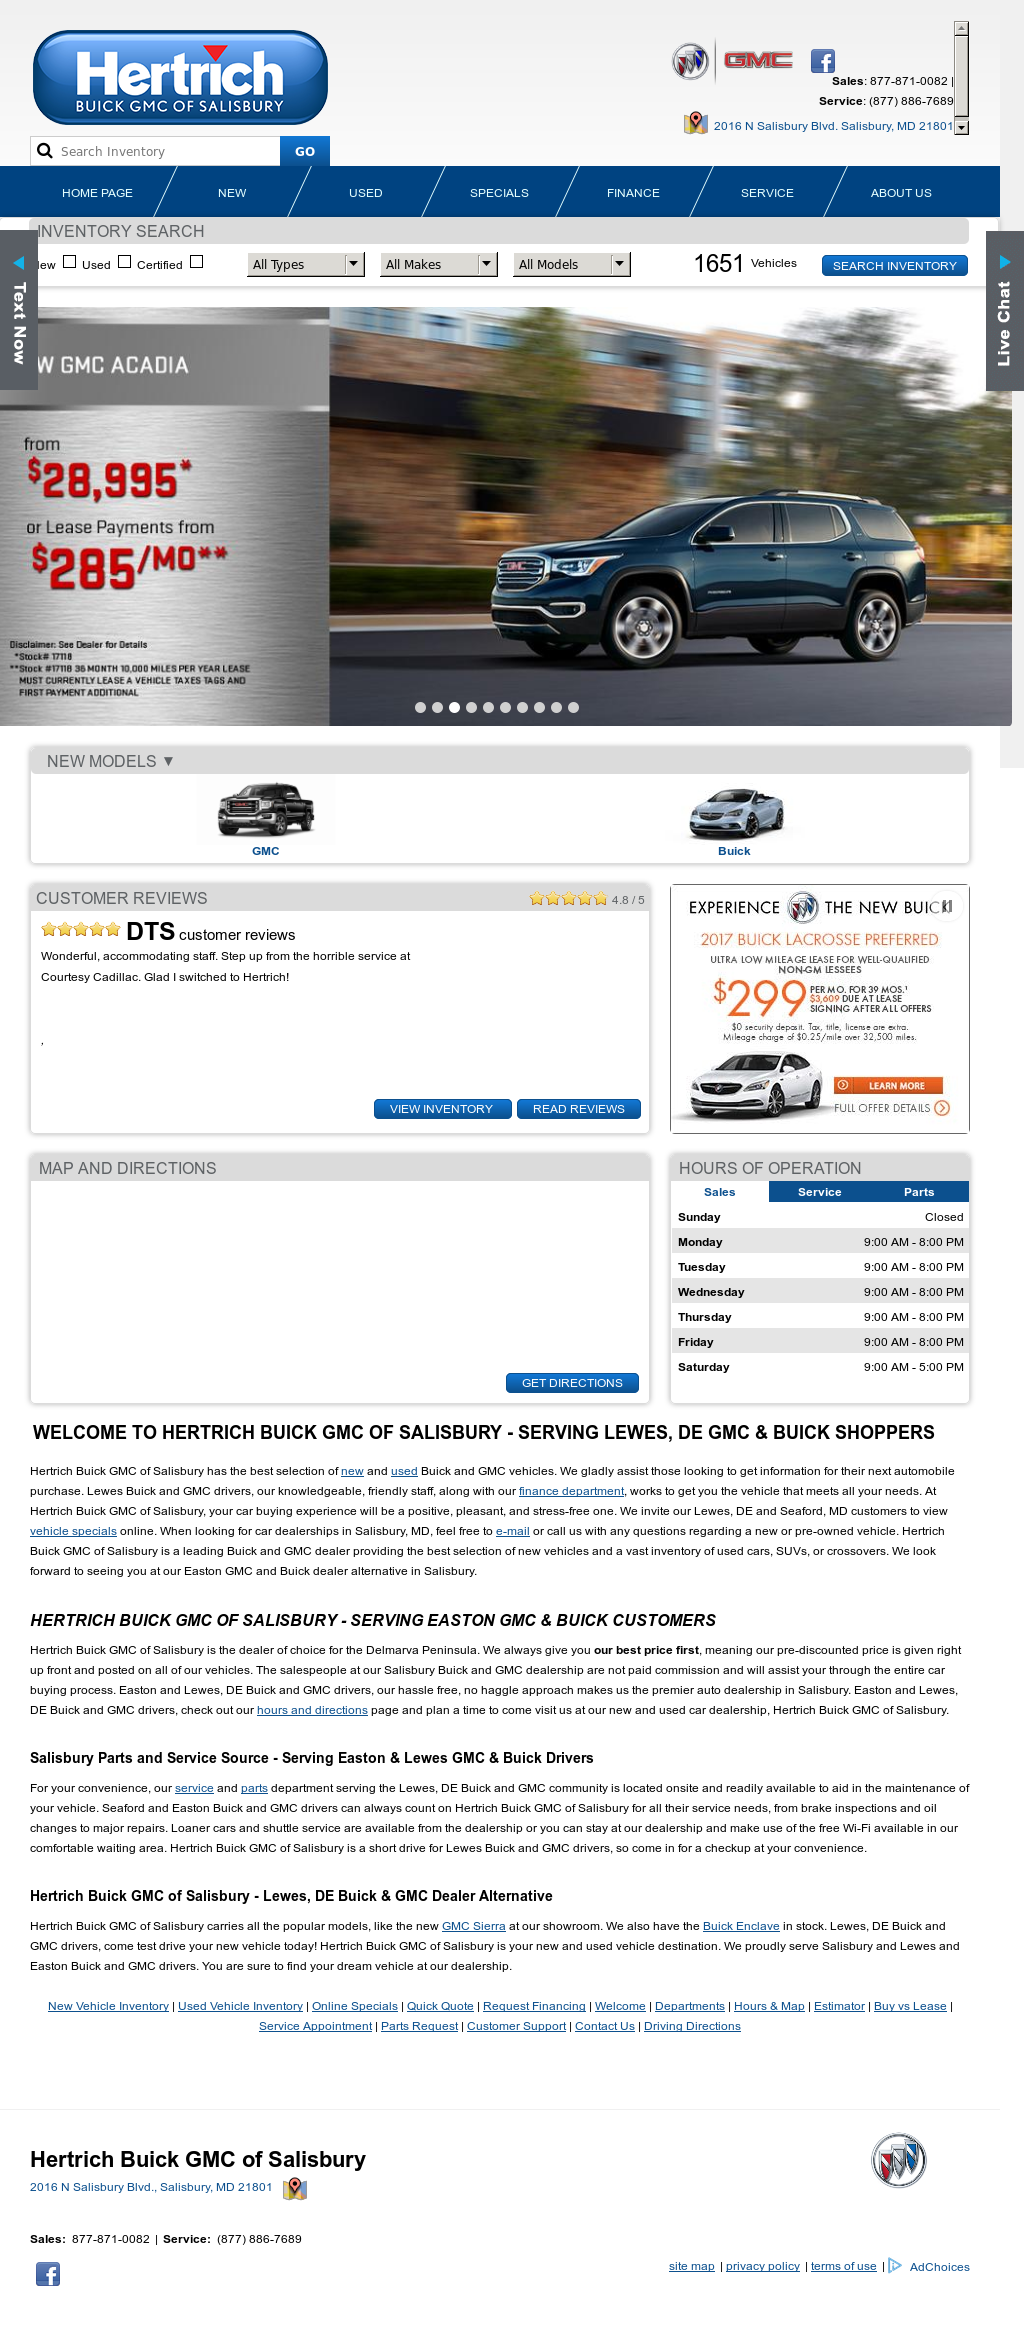 inc gmc brothers crisfield cars dealers sale price at img acadia salisbury and used md for in tawes buick new